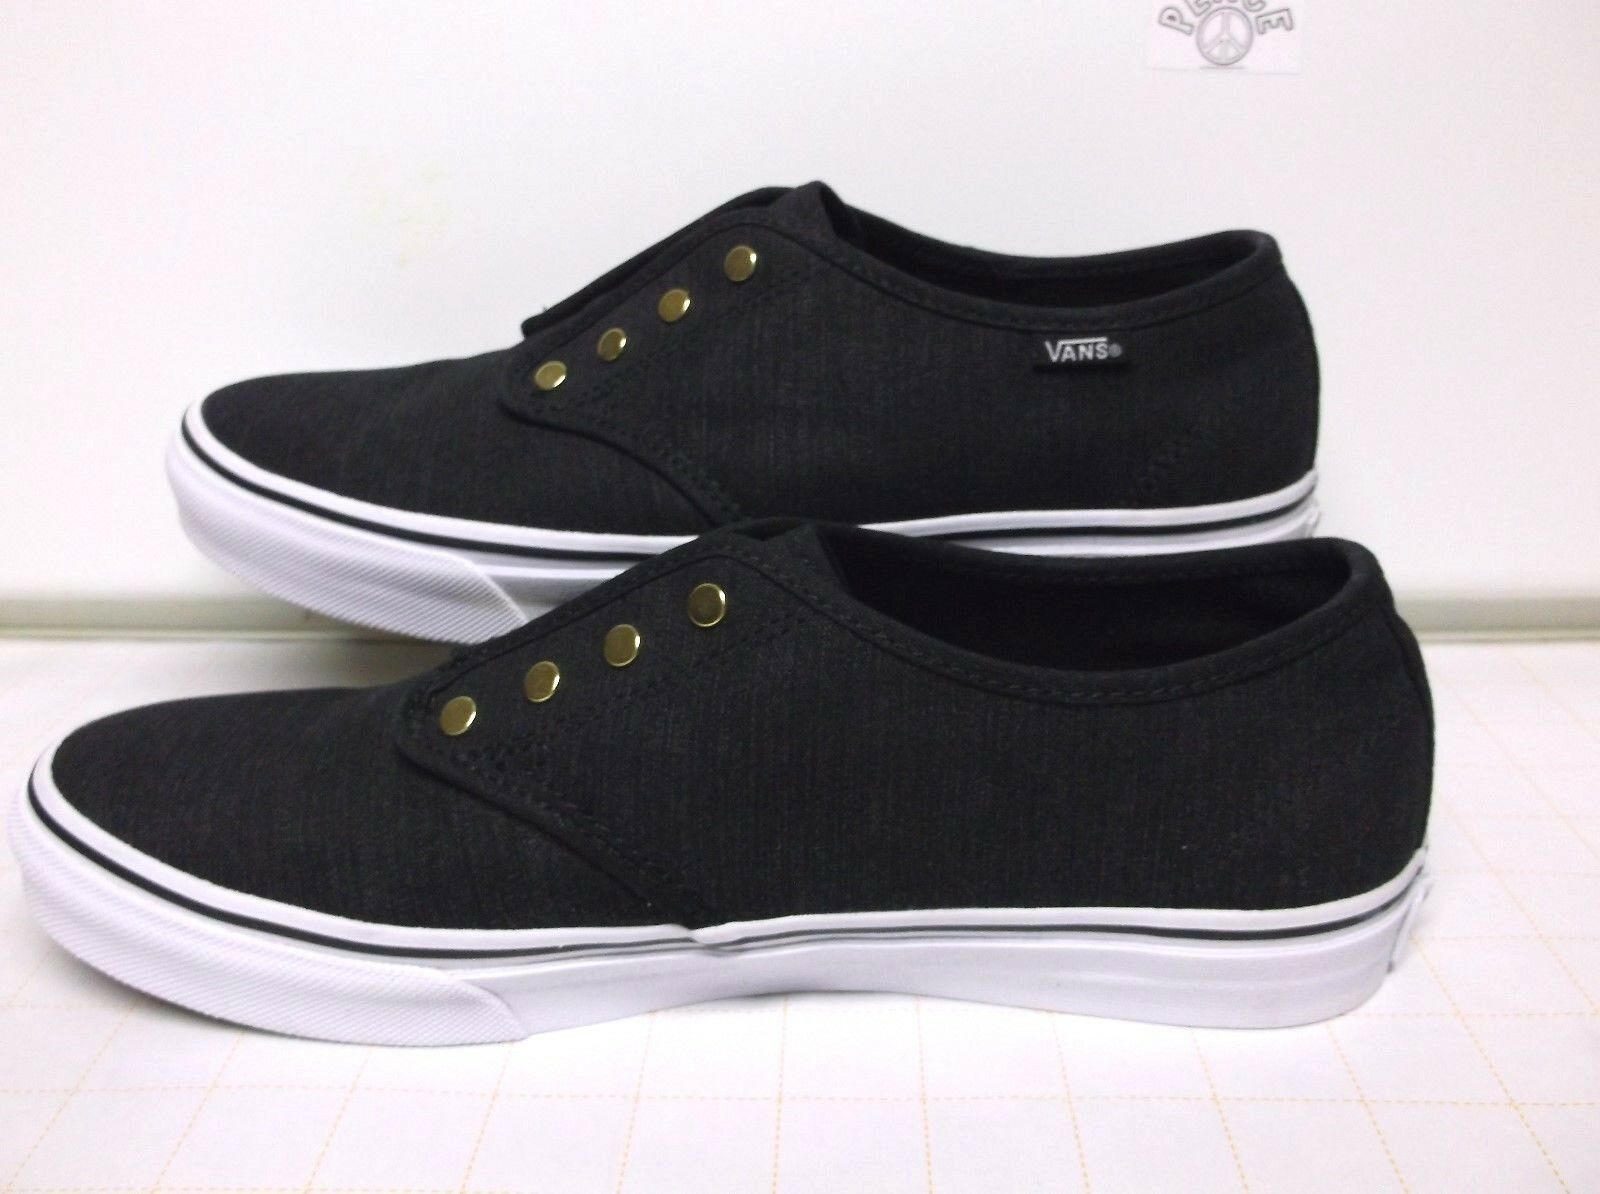 97c20ed83 VANS OFF THE WALL Skate Shoes Low Top Top Top Black..Womens...Size 10 35b284